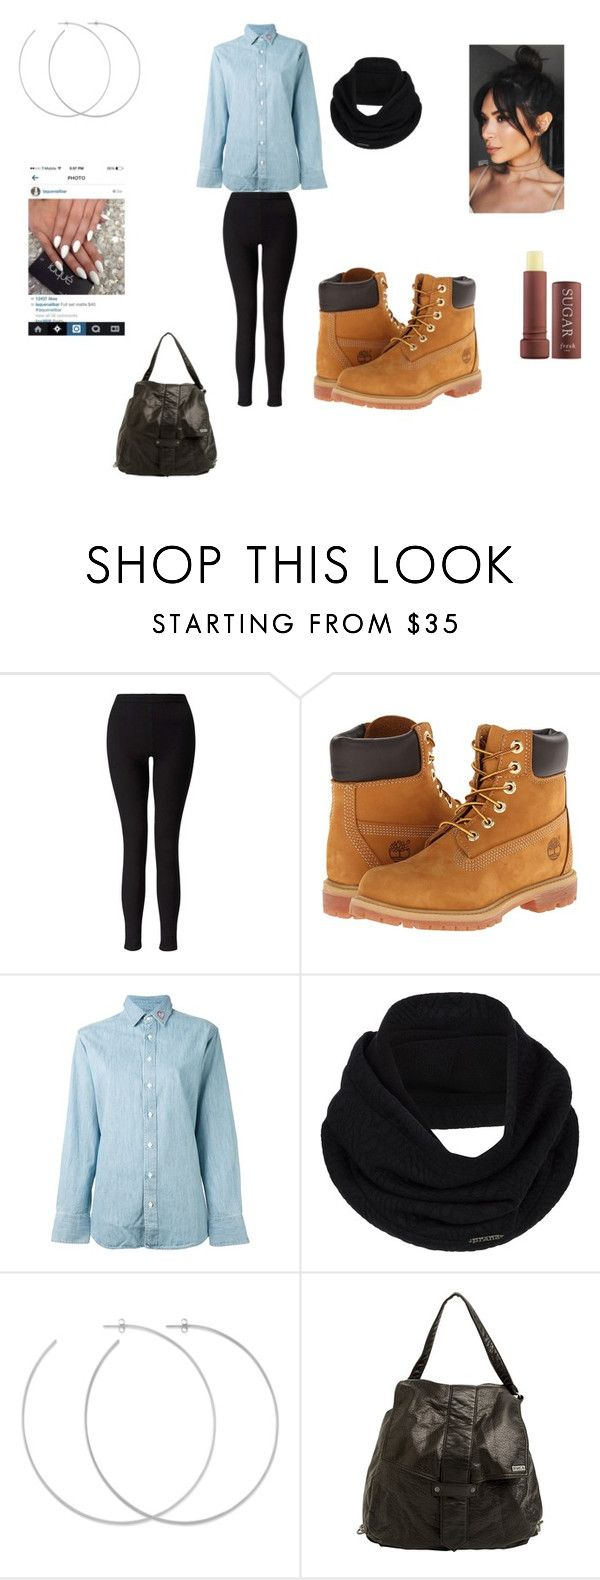 """Timberland Outfit"" by deonnaturner on Polyvore featuring Miss Selfridge, Timberland, rag & bone/JEAN, prAna, Allison Bryan, RVCA and Fresh"